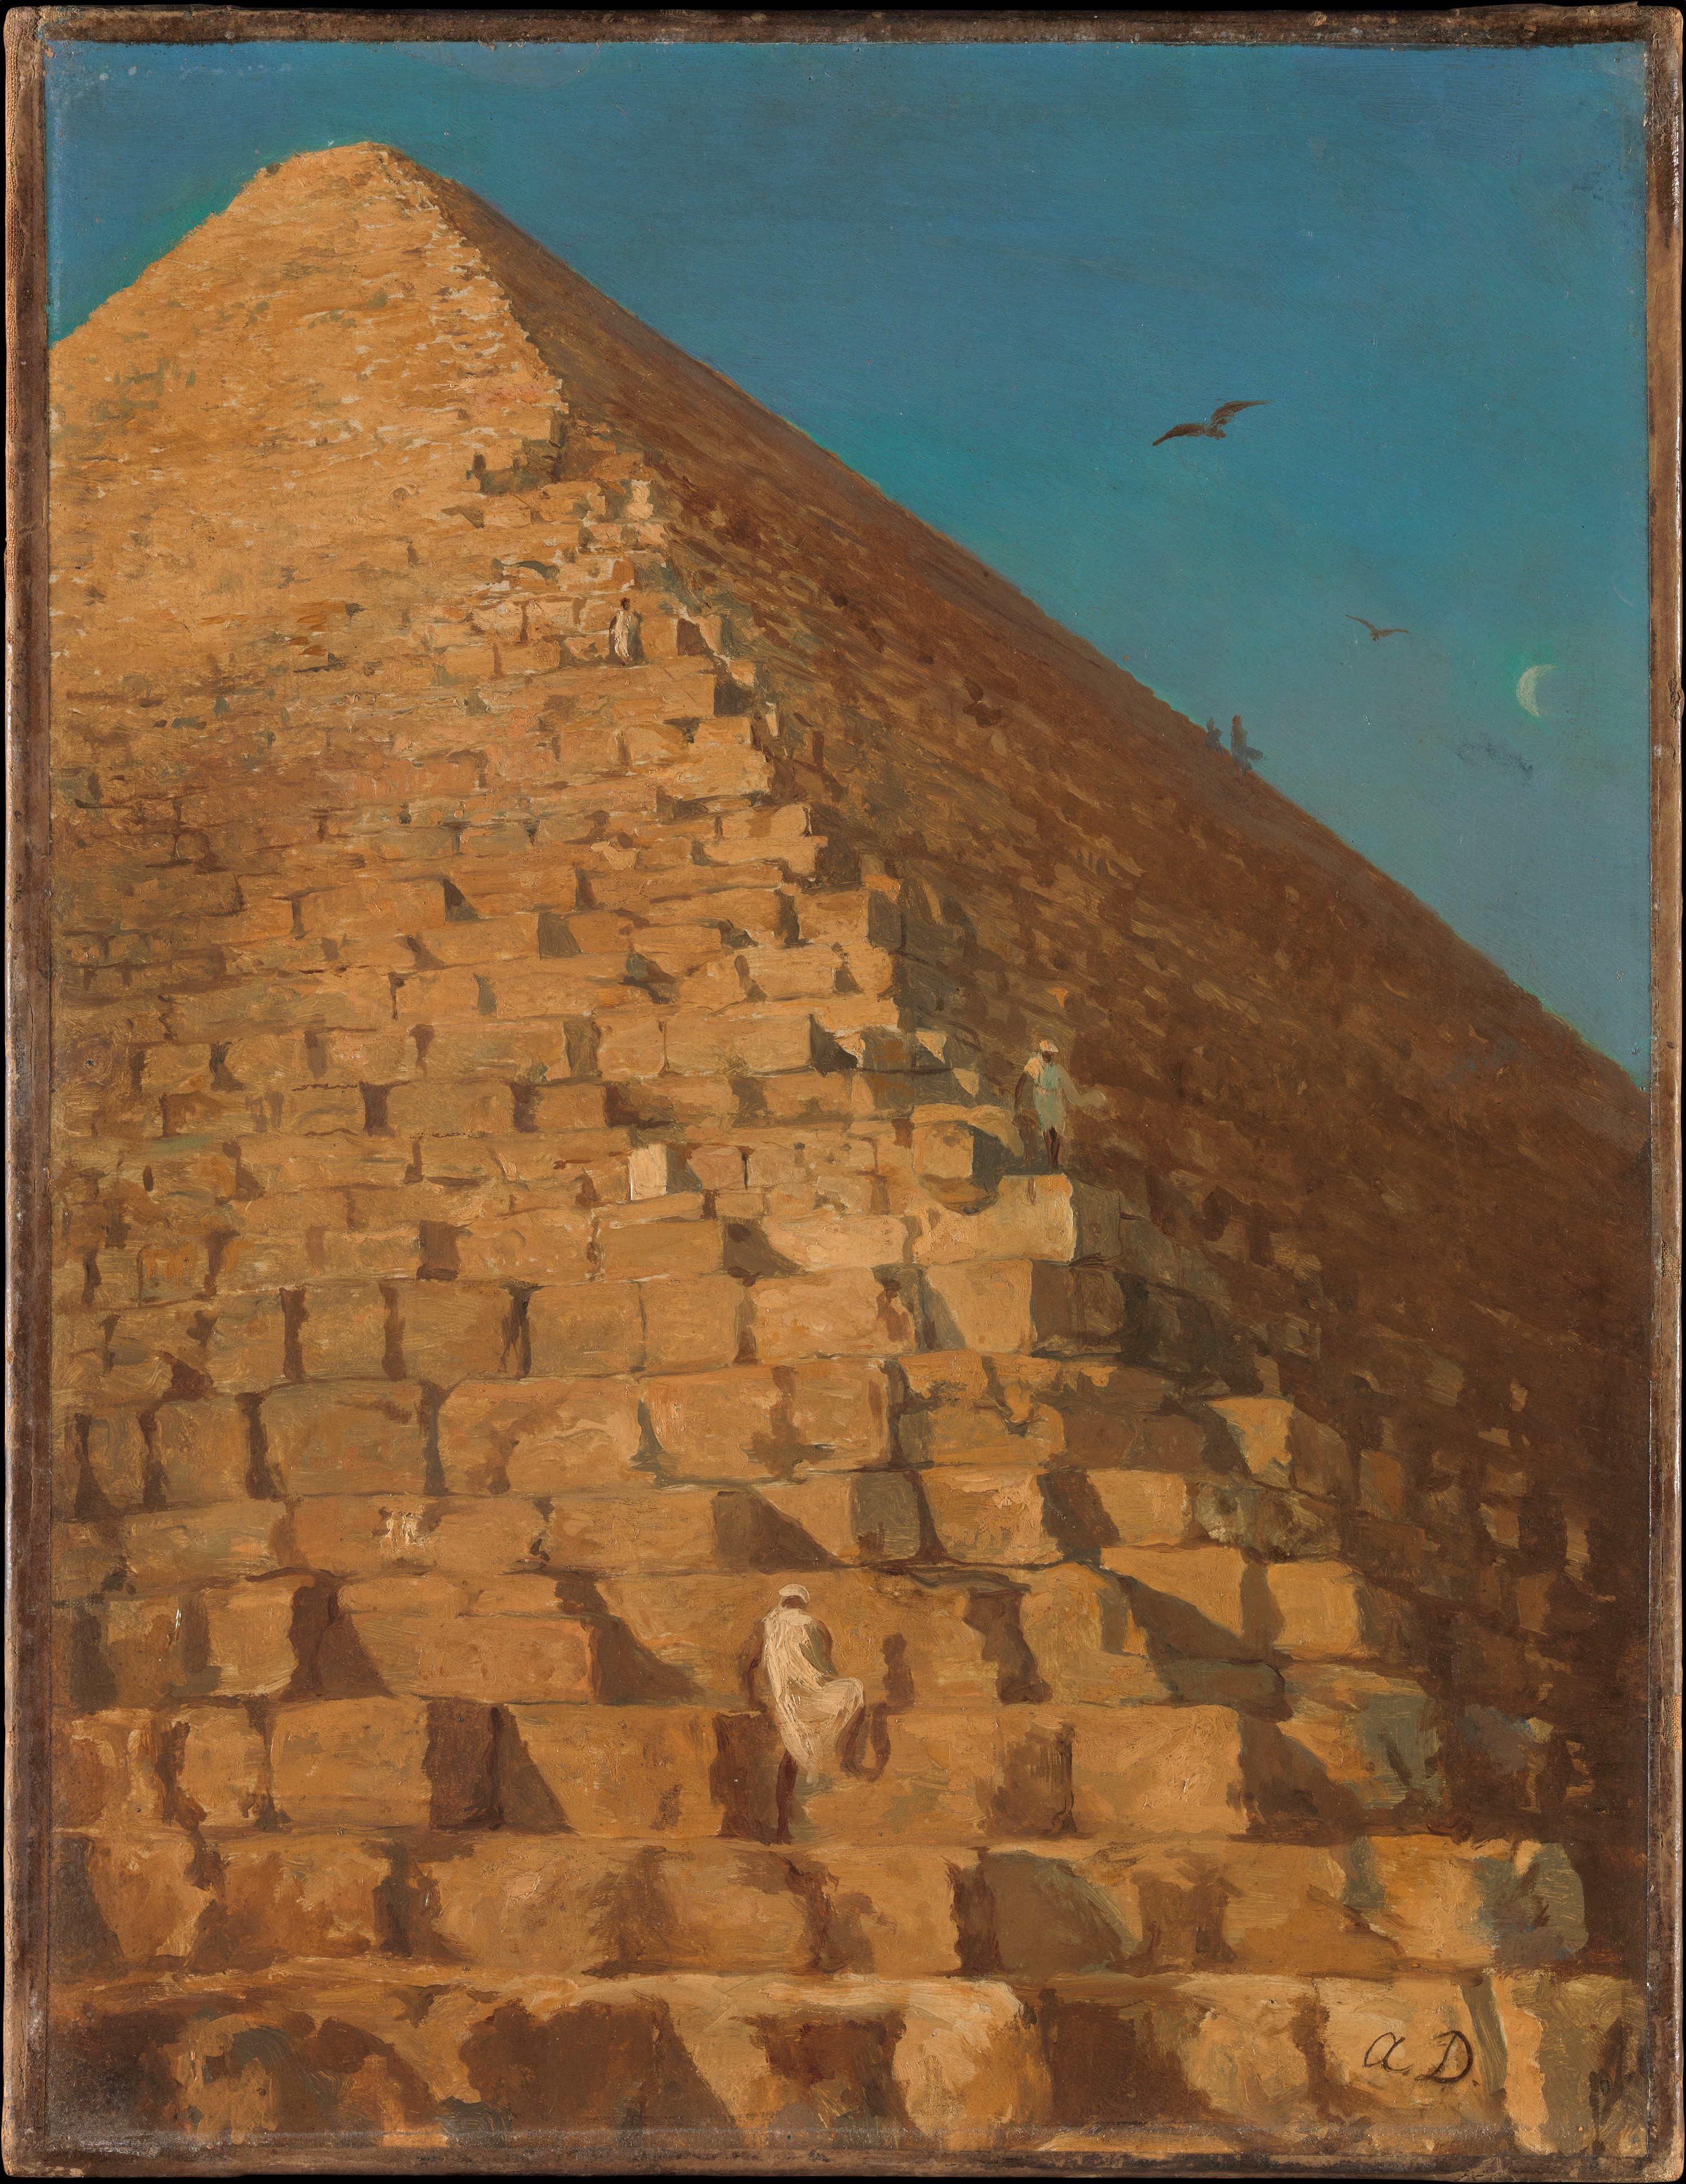 Adrien Dauzats, The Great Pyramid, Giza; from The Met Collection